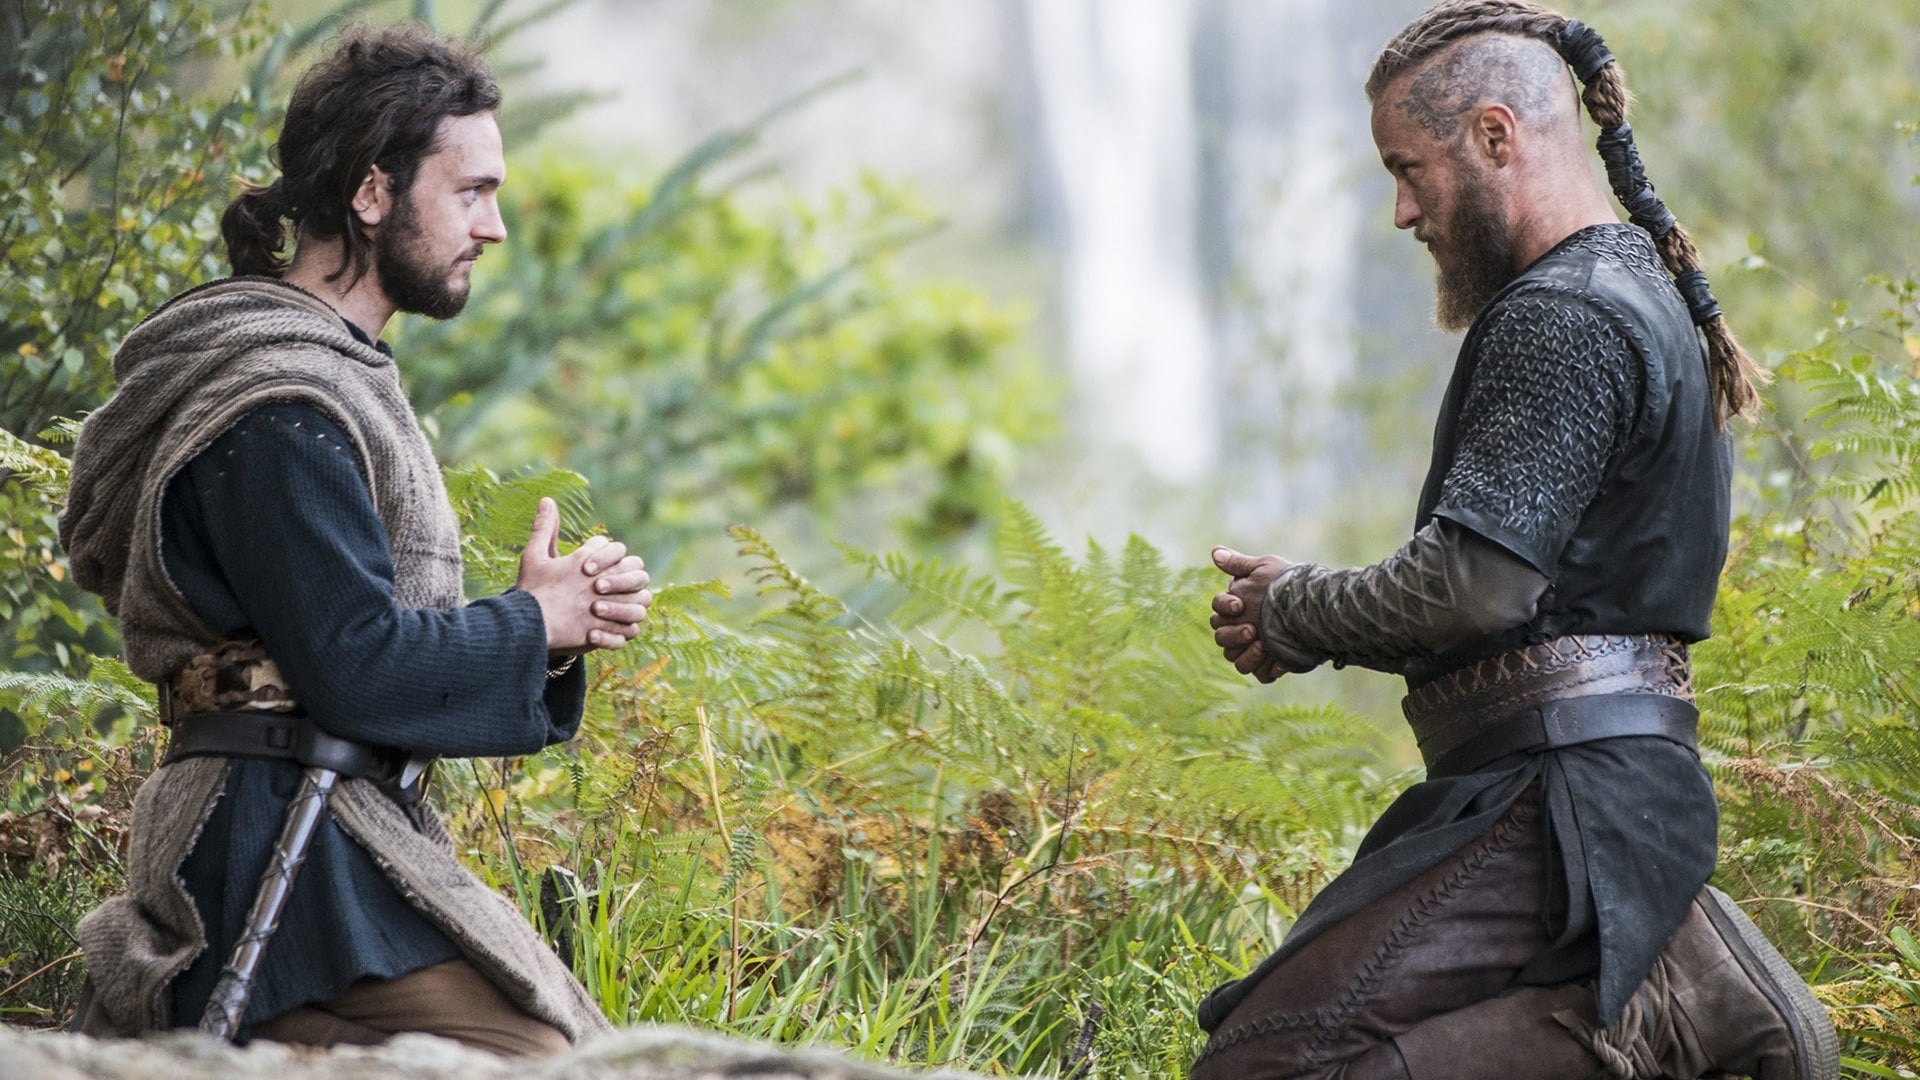 Vikings - Season 2 Episode 10 : The Lord's Prayer